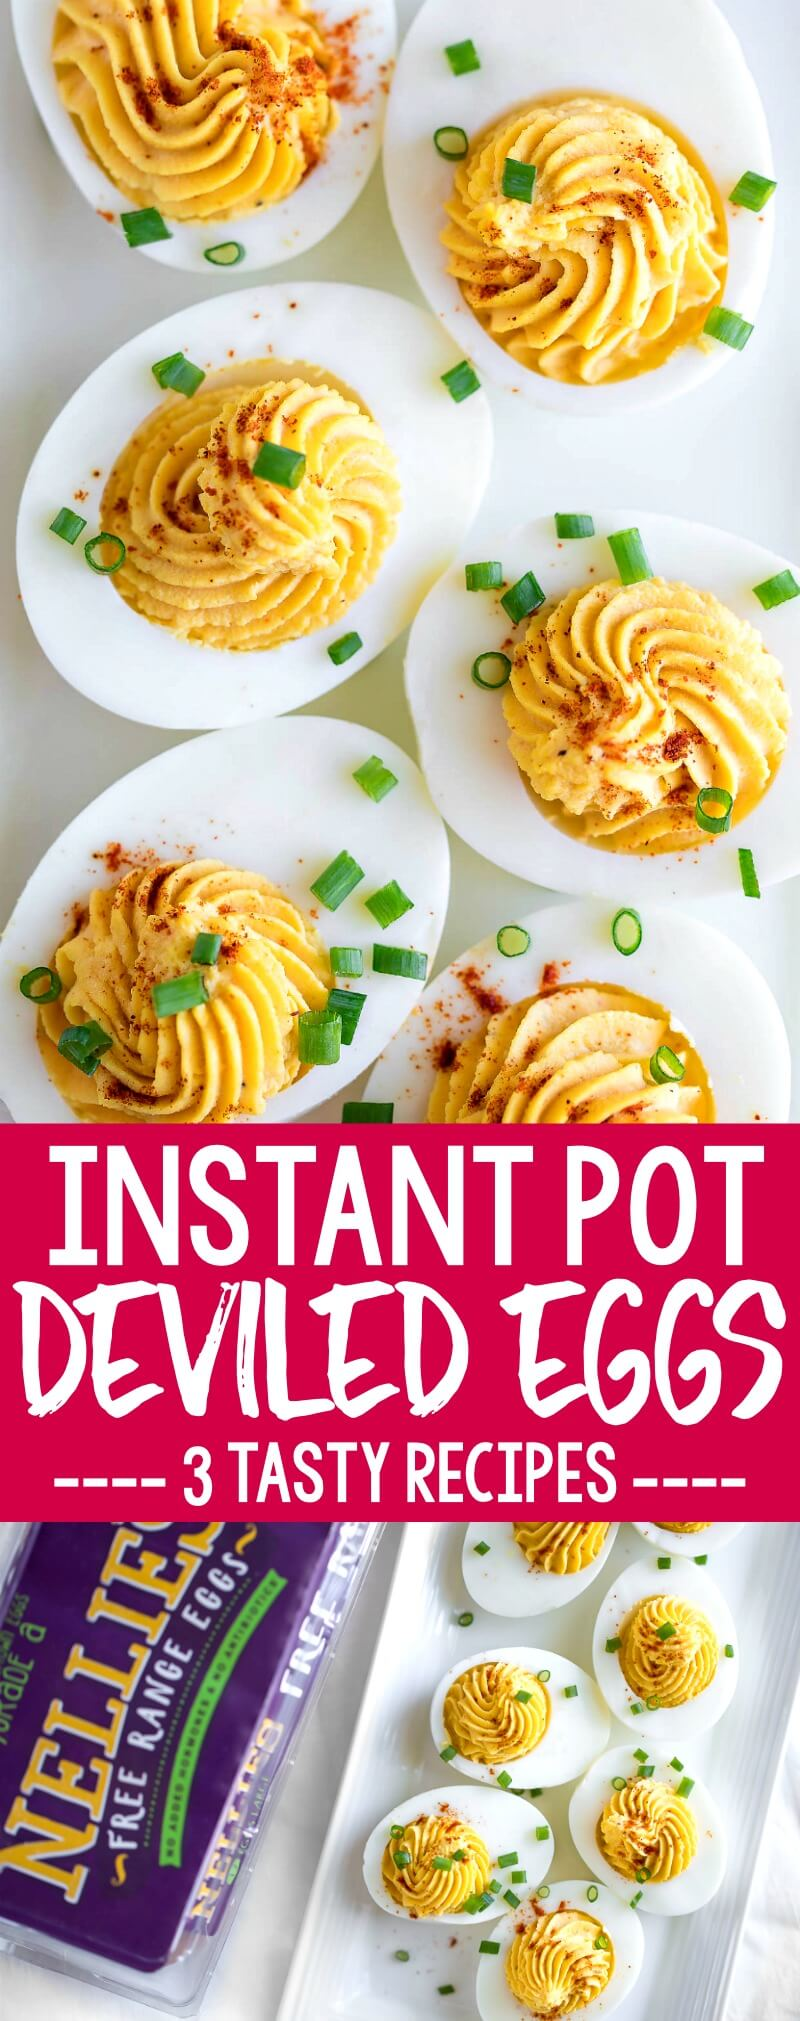 These Instant Pot Deviled eggs are so easy to make!